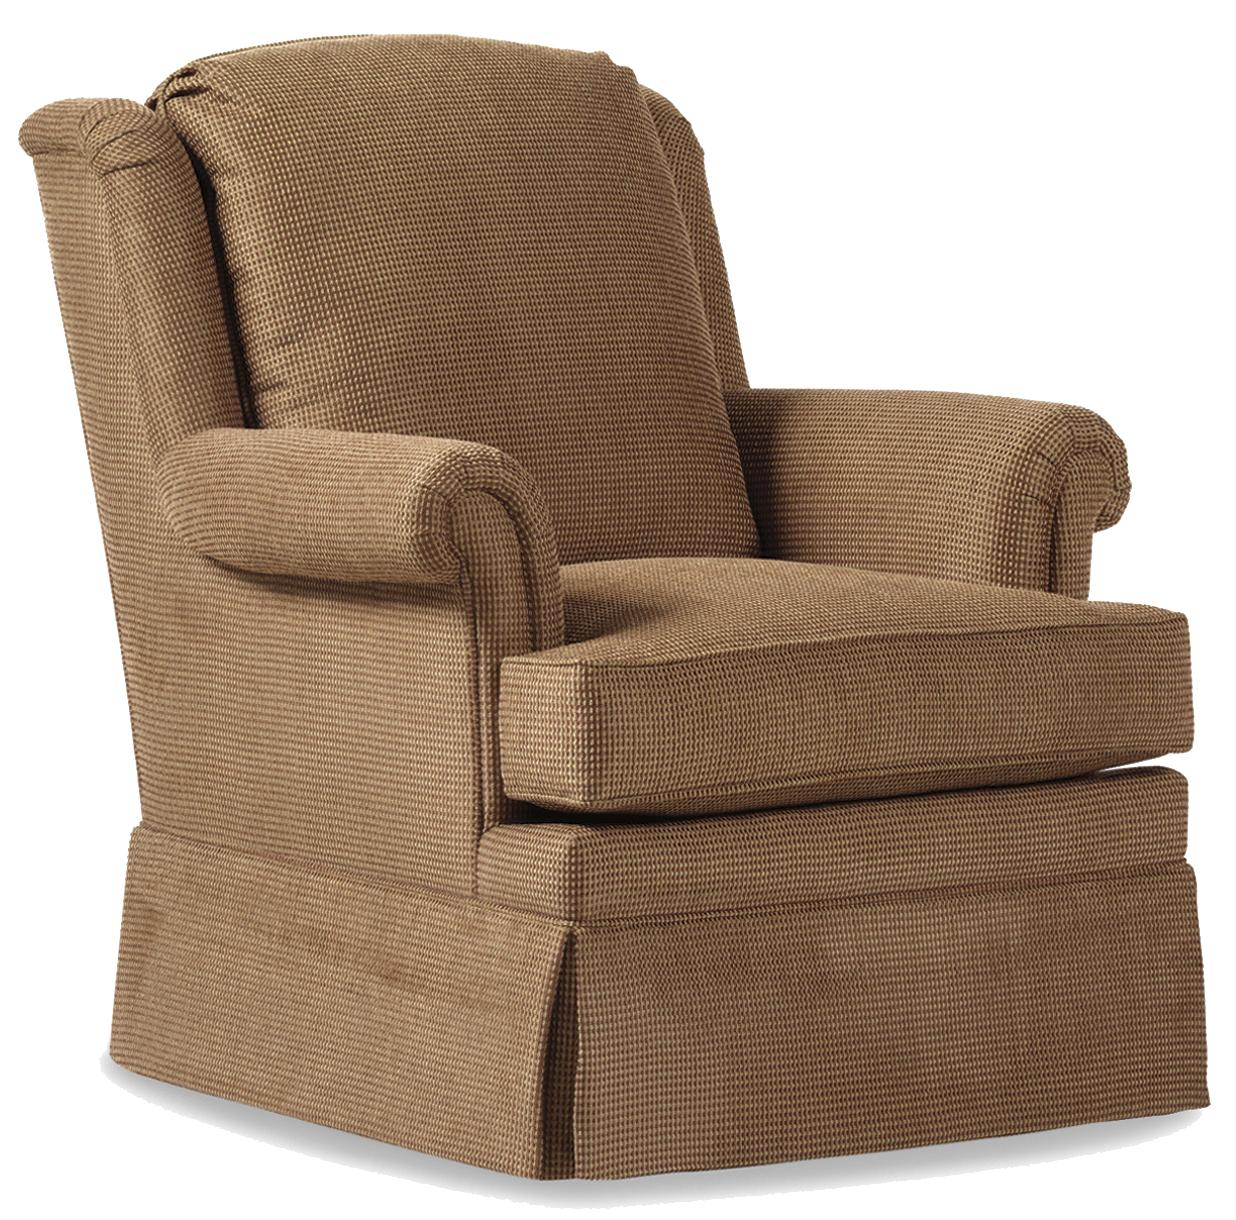 Fine Upholstered Accents Brooklyn Swivel Rocker    by Jessica Charles at Alison Craig Home Furnishings